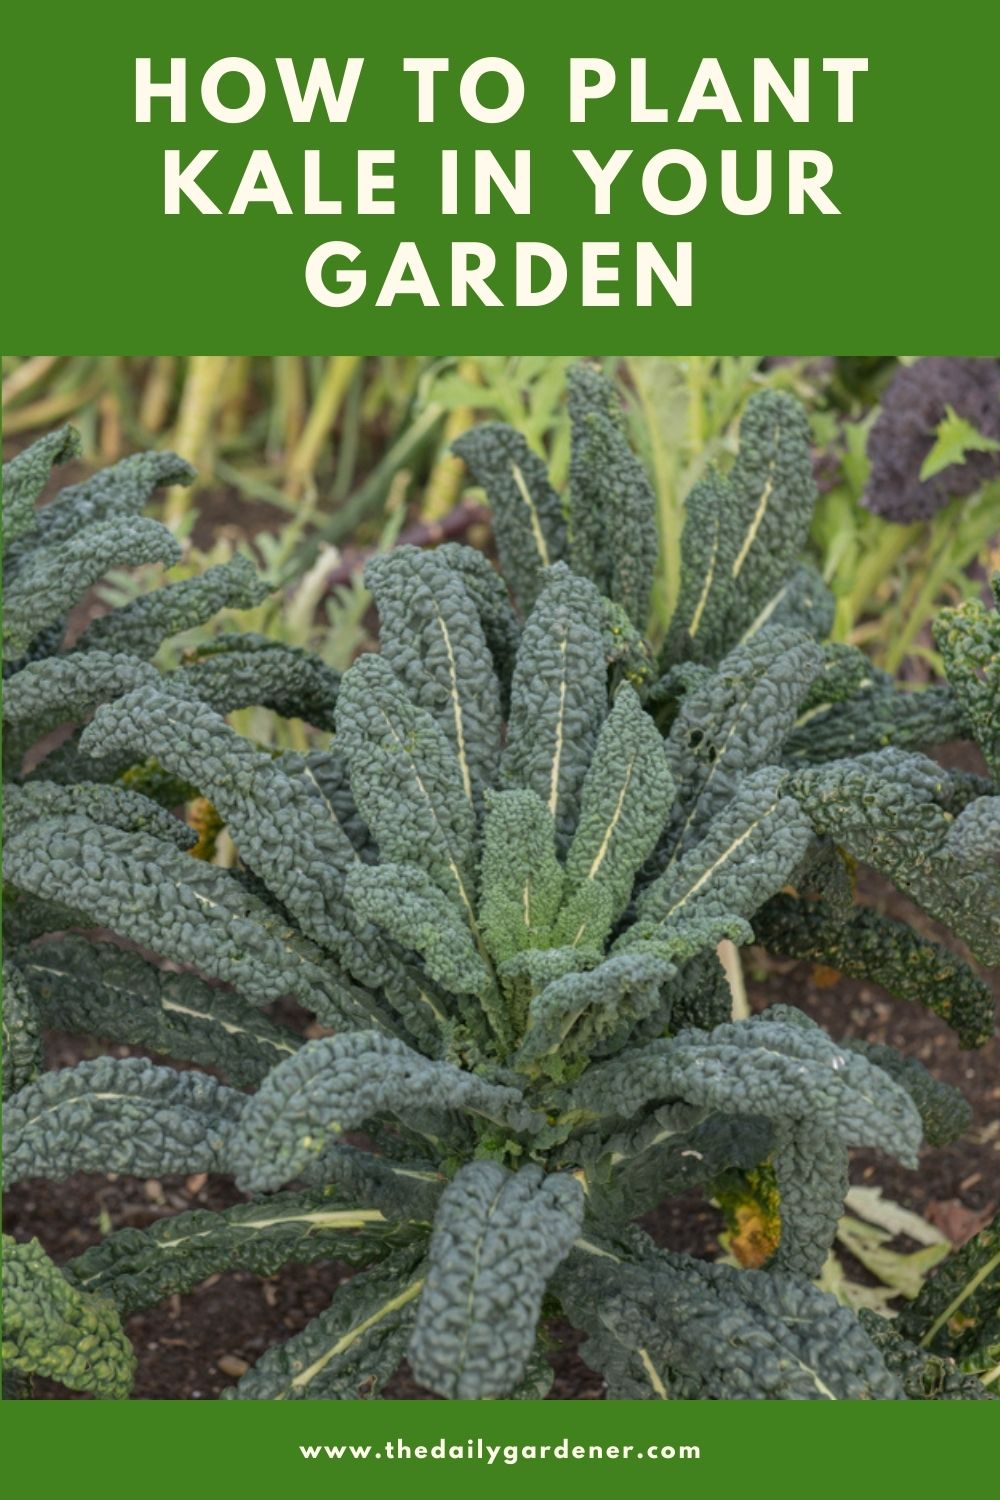 How to Plant Kale in Your Garden (Tricks to Care!) 2